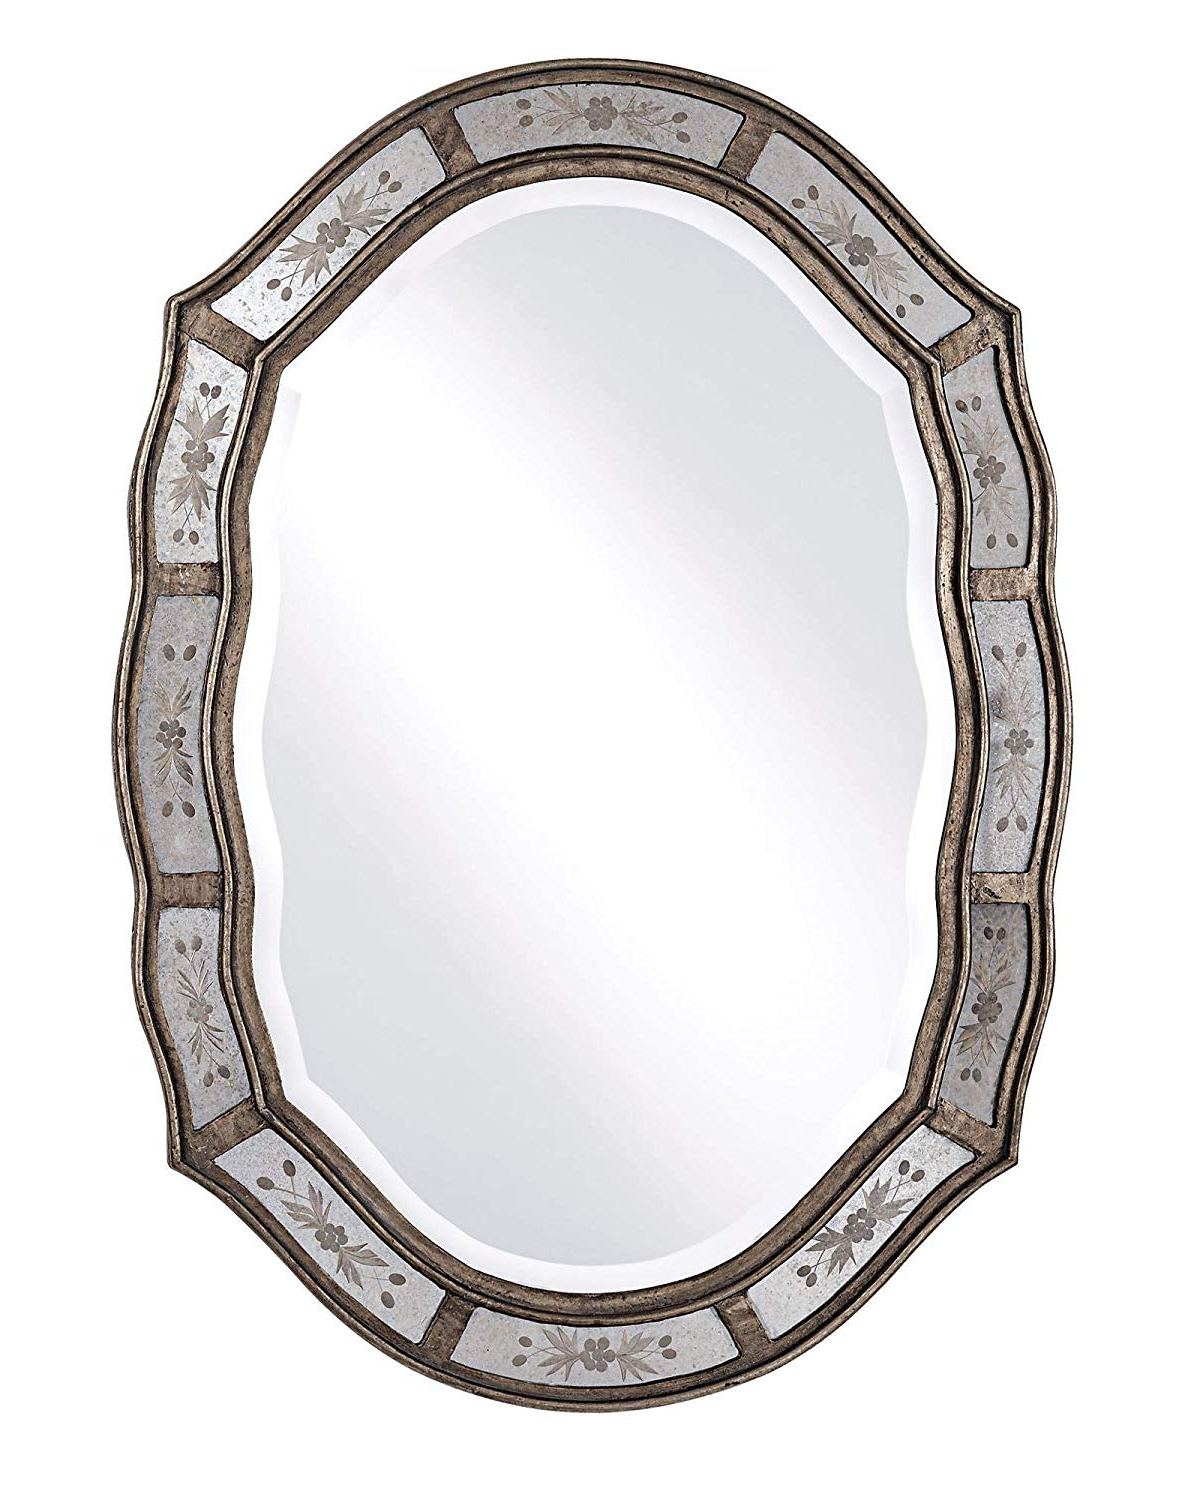 "Most Recent Fifi Contemporary Arch Wall Mirrors Inside Uttermost Fifi Etched 25"" X 35"" Wall Mirror (View 18 of 20)"